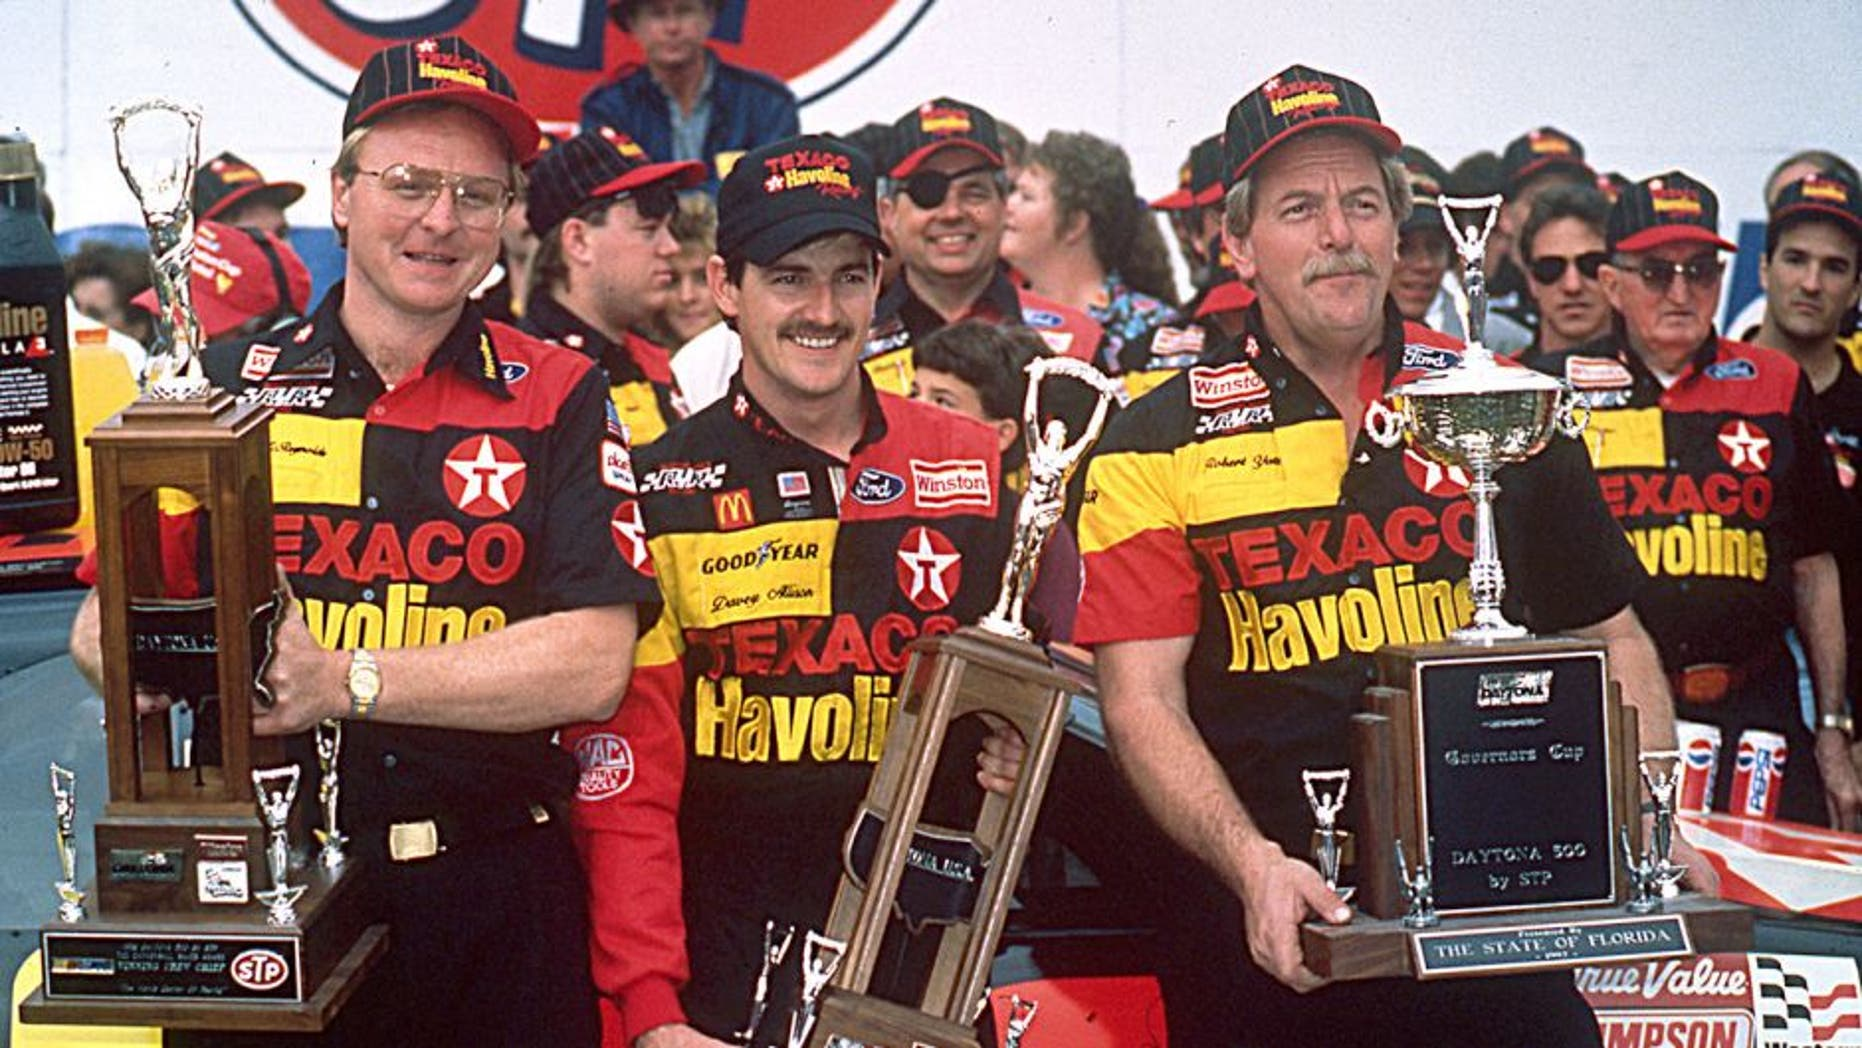 DAYTONA BEACH, FL ? February 16, 1992: Davey Allison (C) celebrates in victory lane at Daytona International Speedway with crew chief Larry McReynolds (L) and car owner Robert Yates (R) after winning the Daytona 500 NASCAR Cup race. (Photo by ISC Images & Archives via Getty Images)